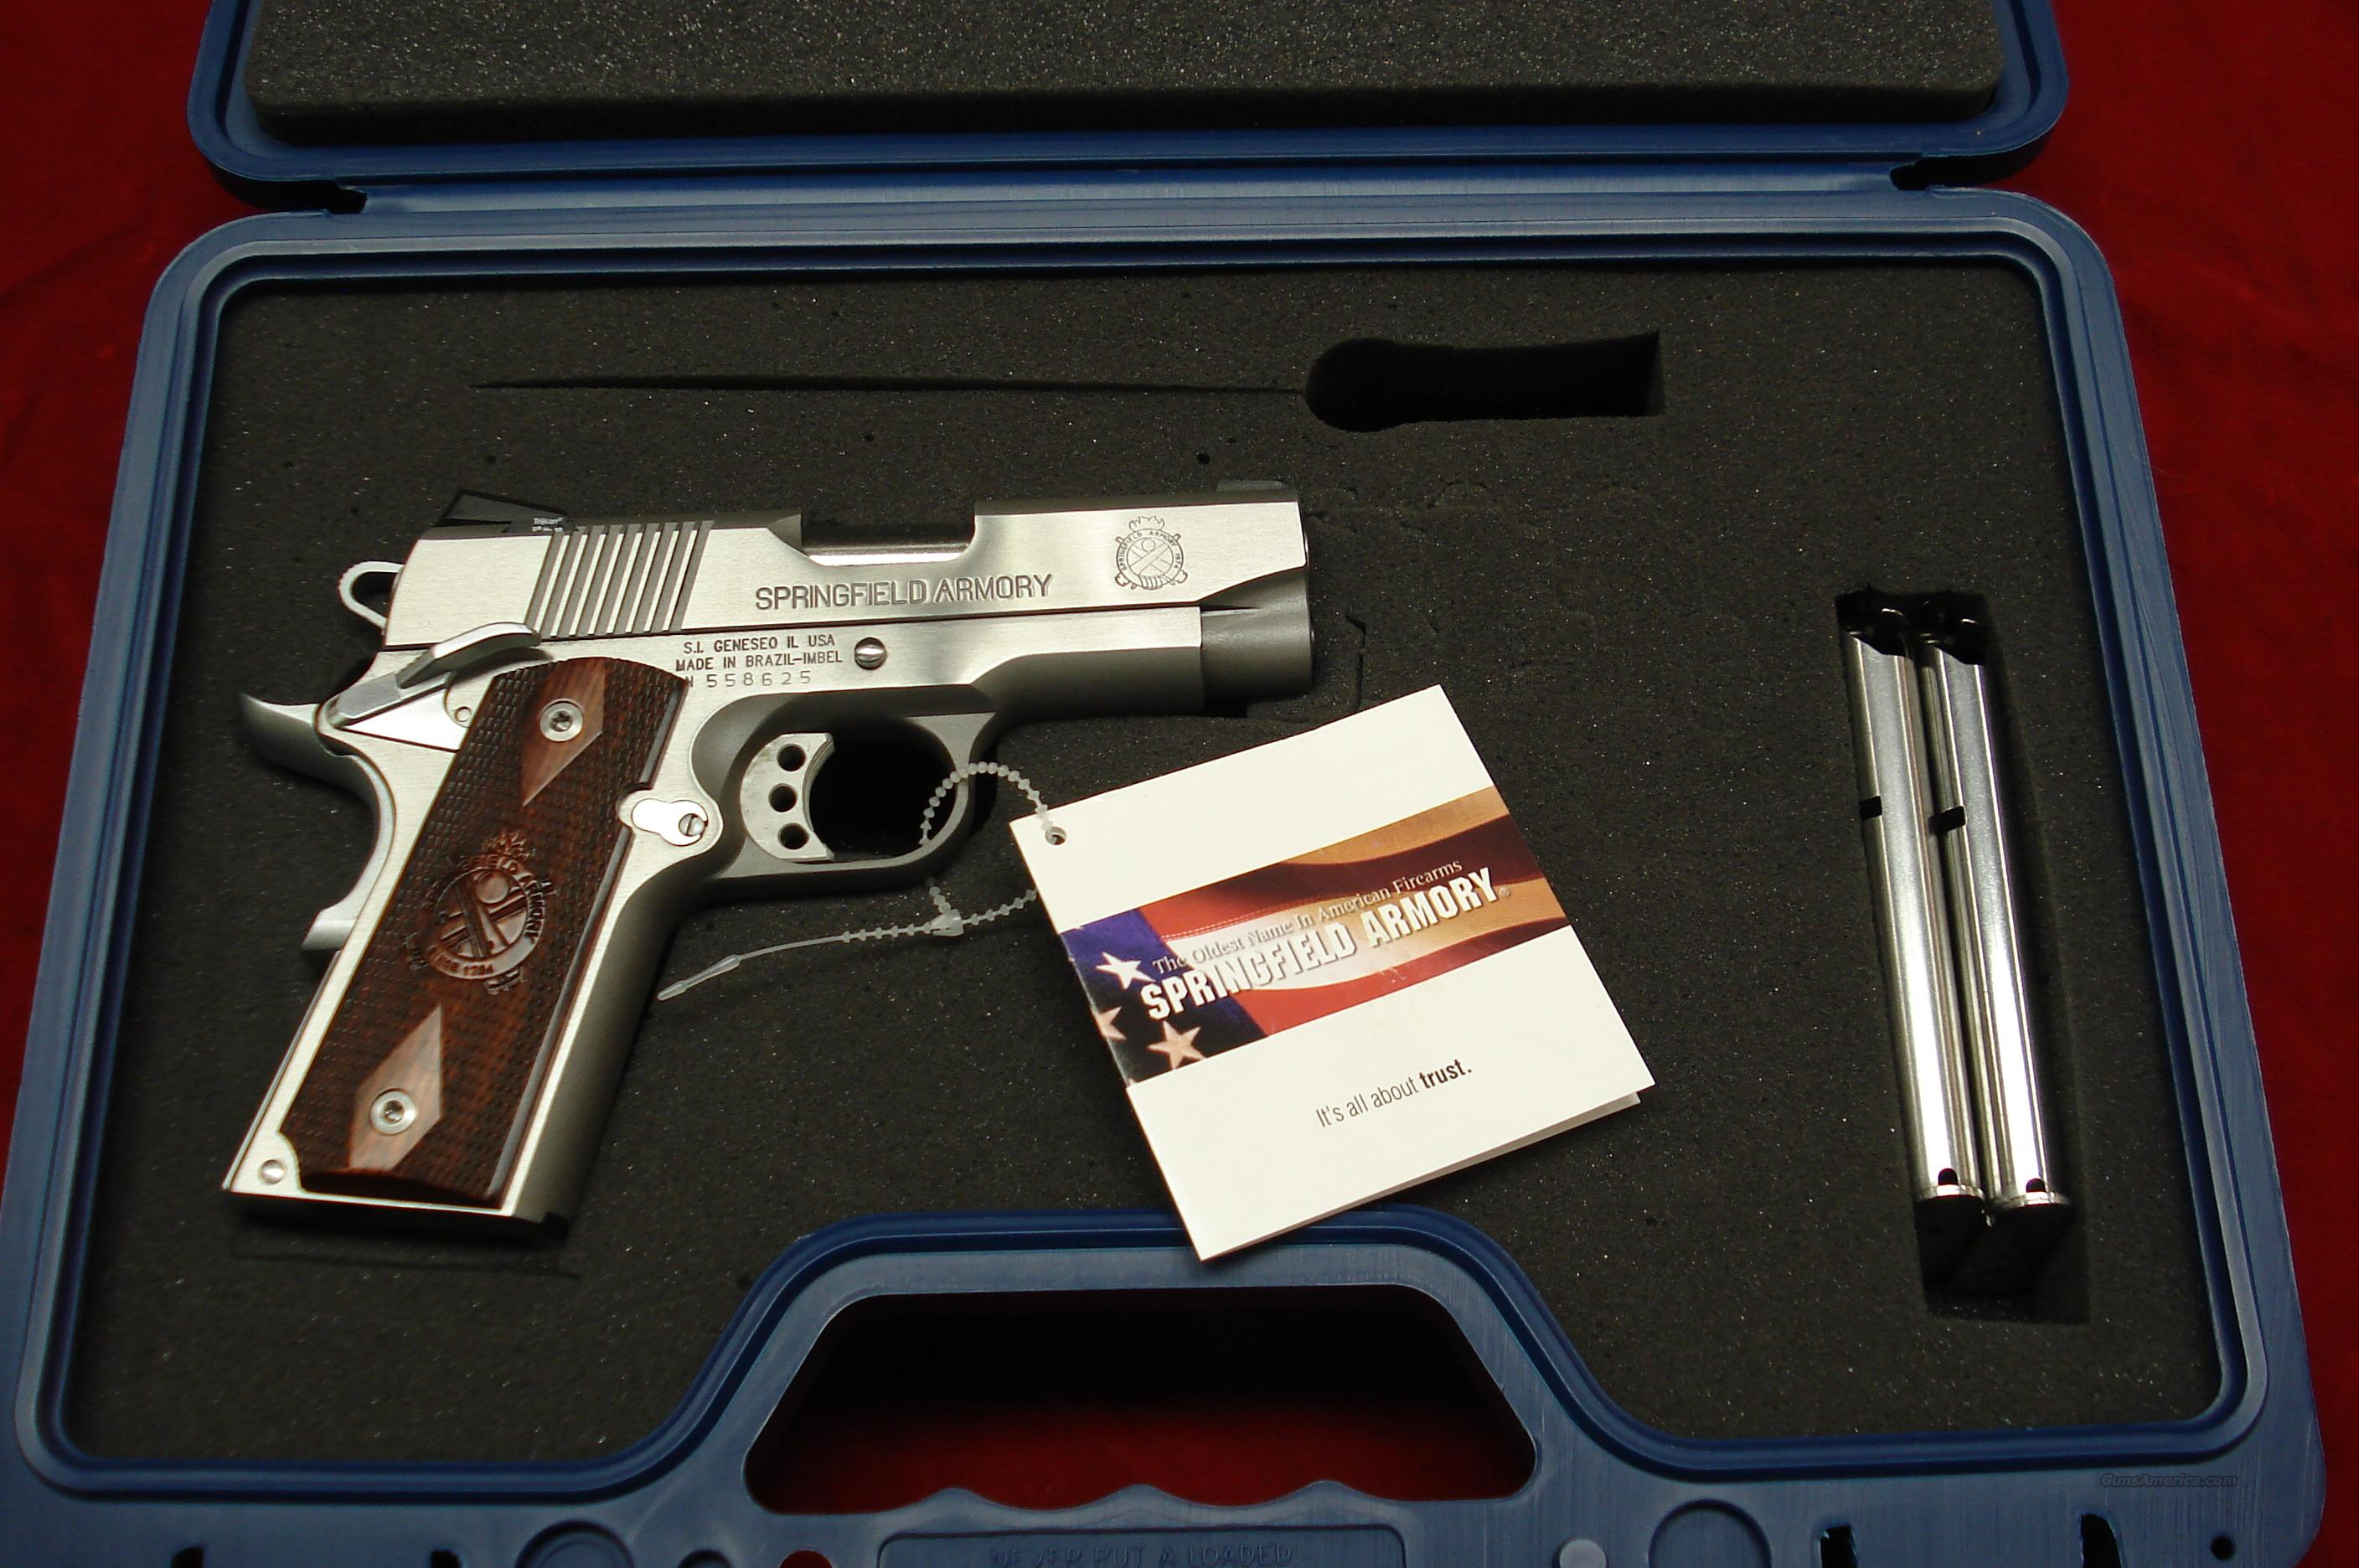 SPRINGFIELD ARMORY STAINLESS ULTRA COMPACT  WITH NIGHT SIGHTS (PX9161LP) NEW  Guns > Pistols > Springfield Armory Pistols > 1911 Type